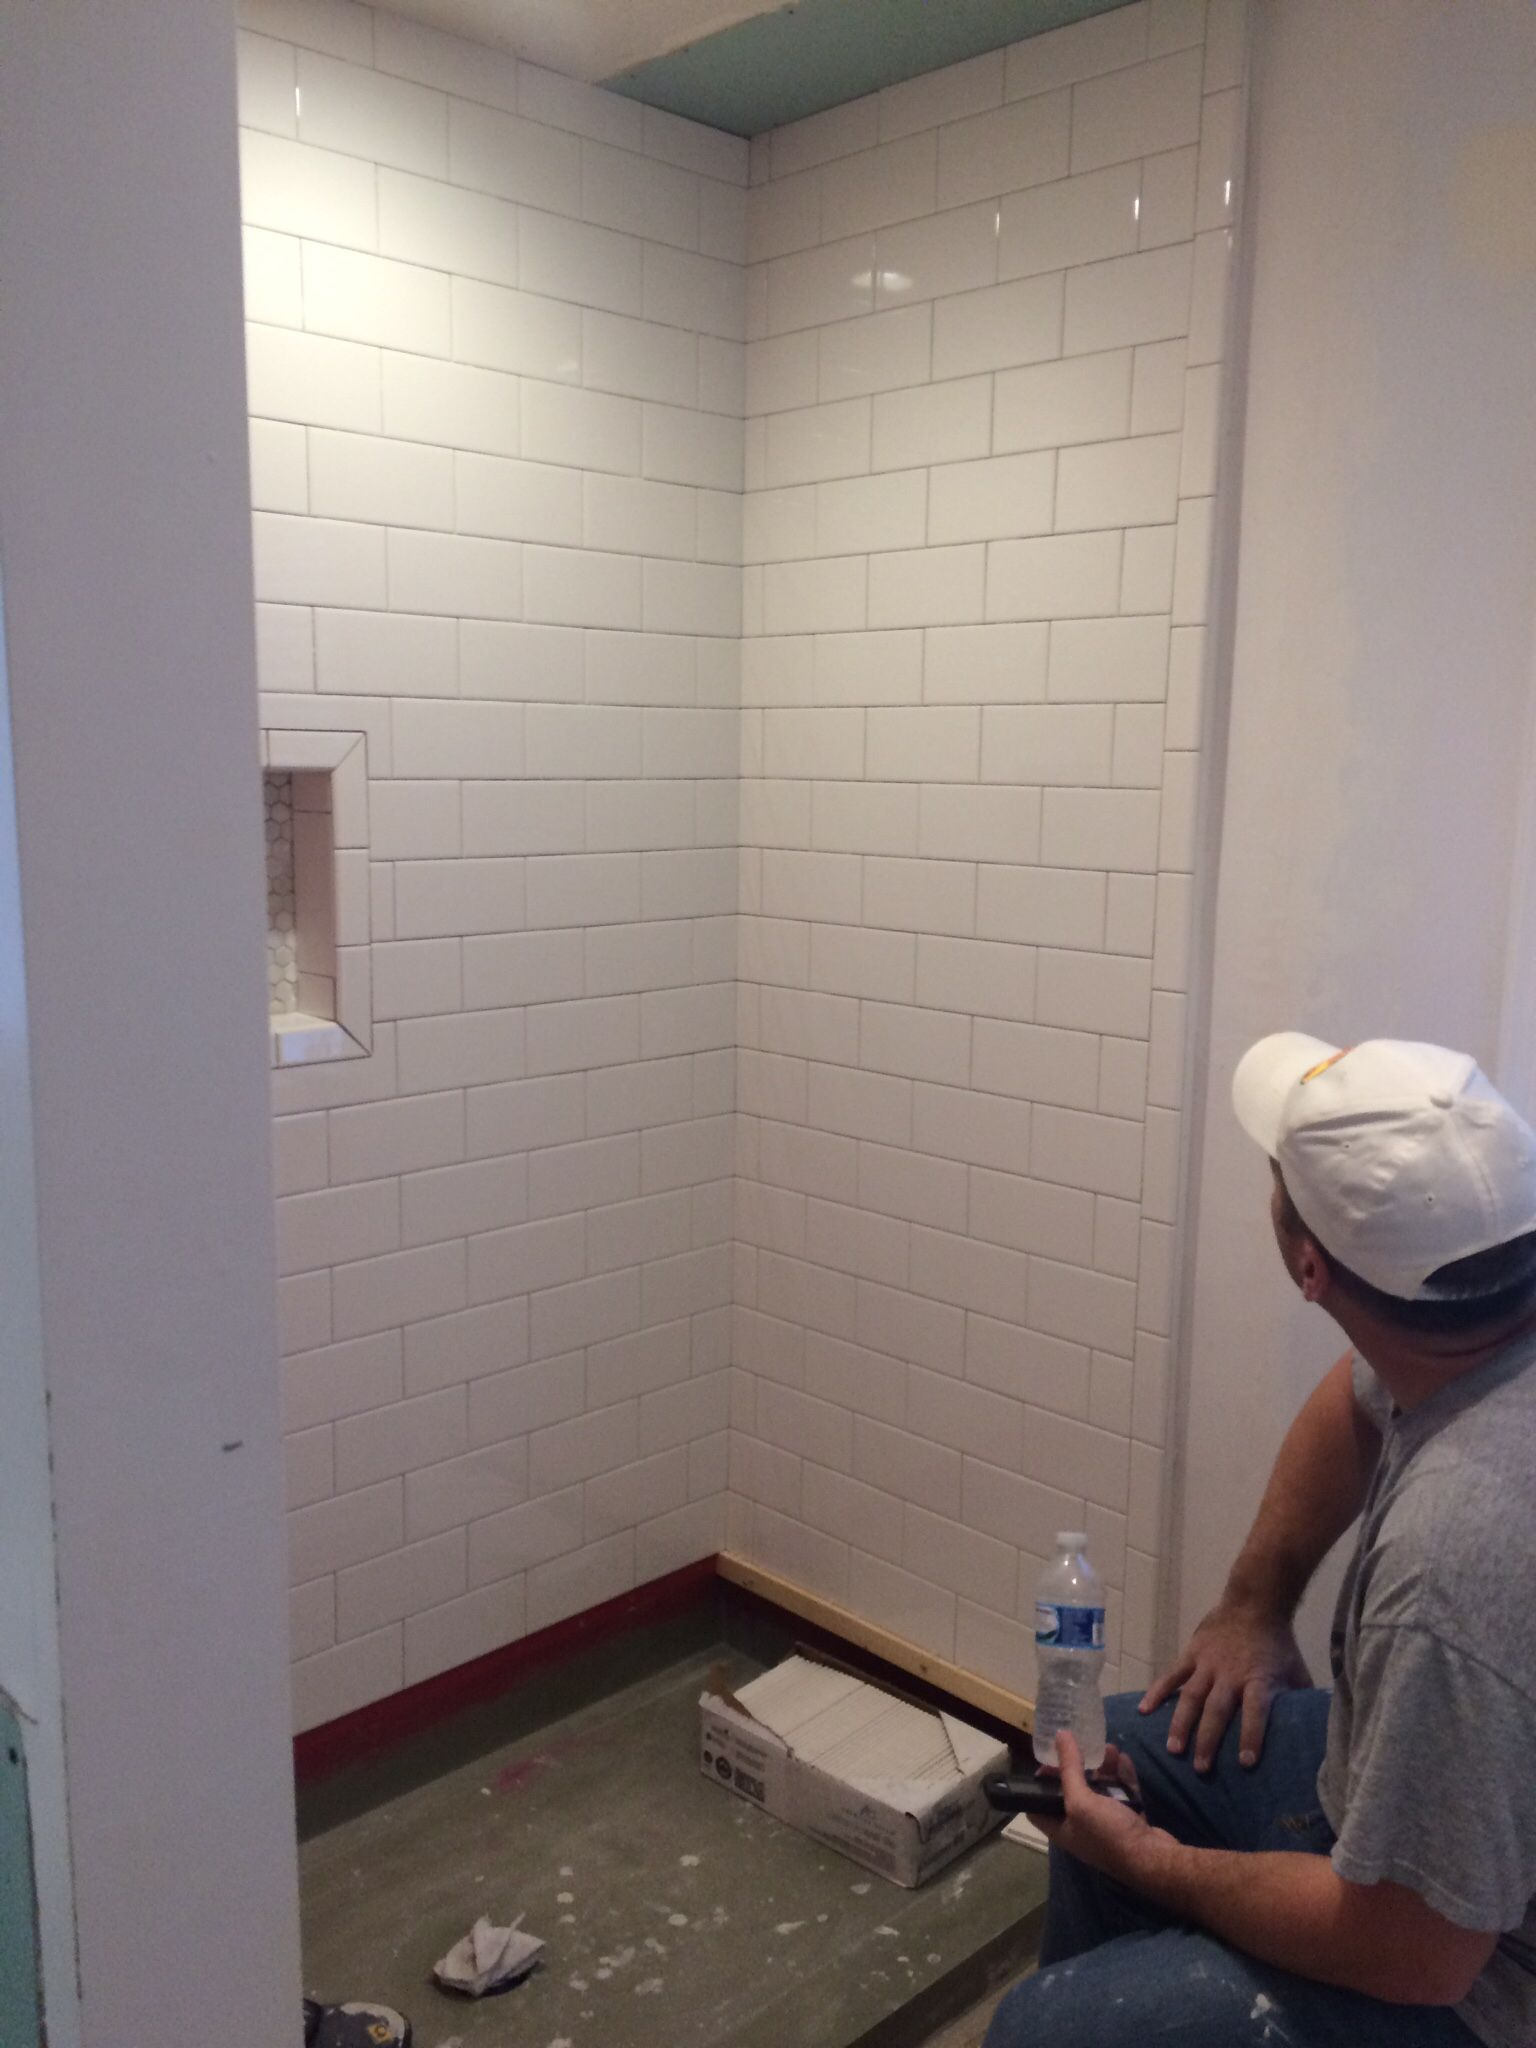 Shower subway tiles. These are the 4x8 american olean tiles from ...